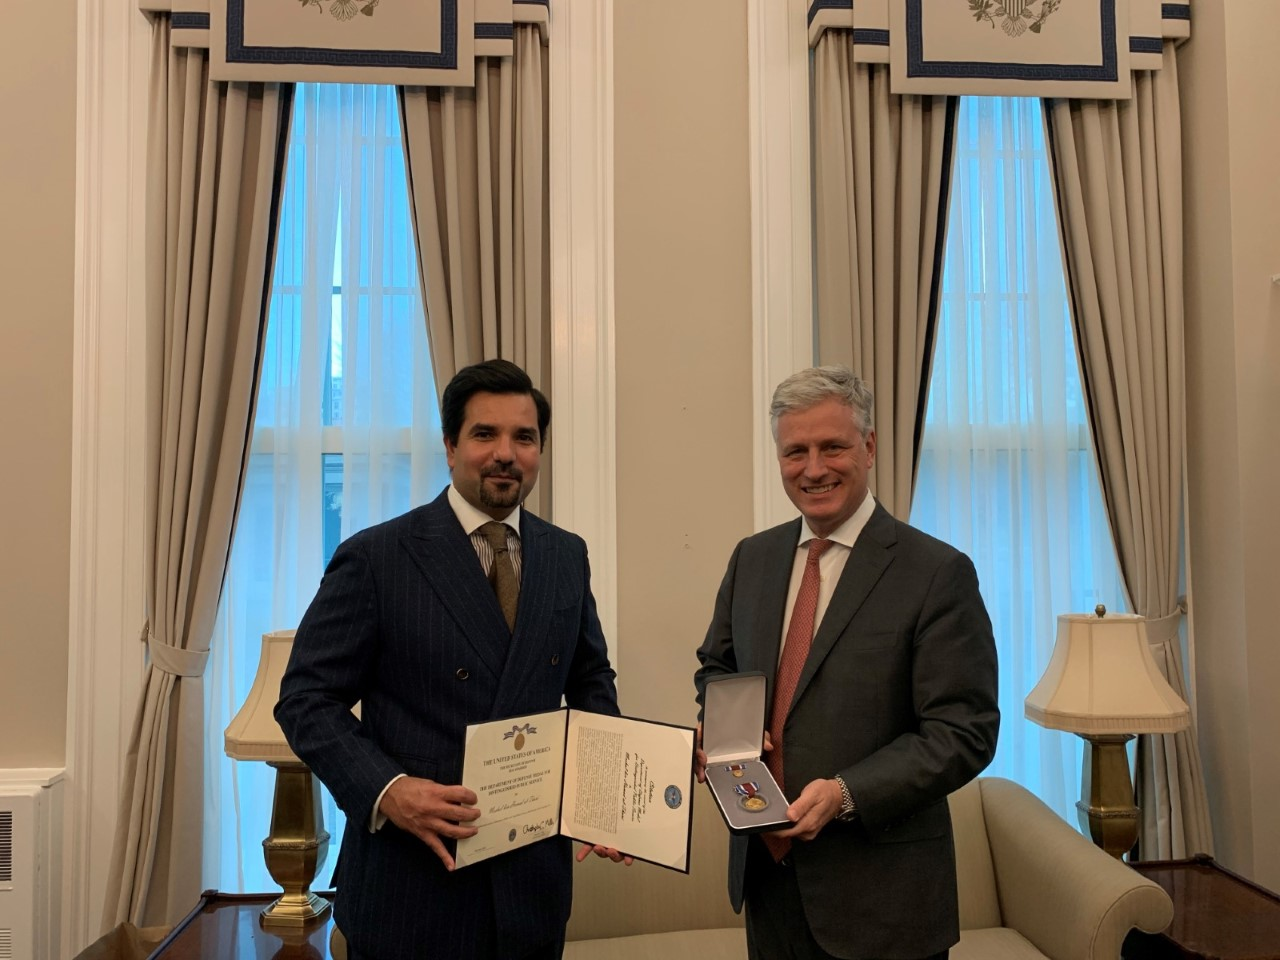 Deputy Prime Minister and Minister of Foreign Affairs Receives US Highest Medal for Distinguished Public Service